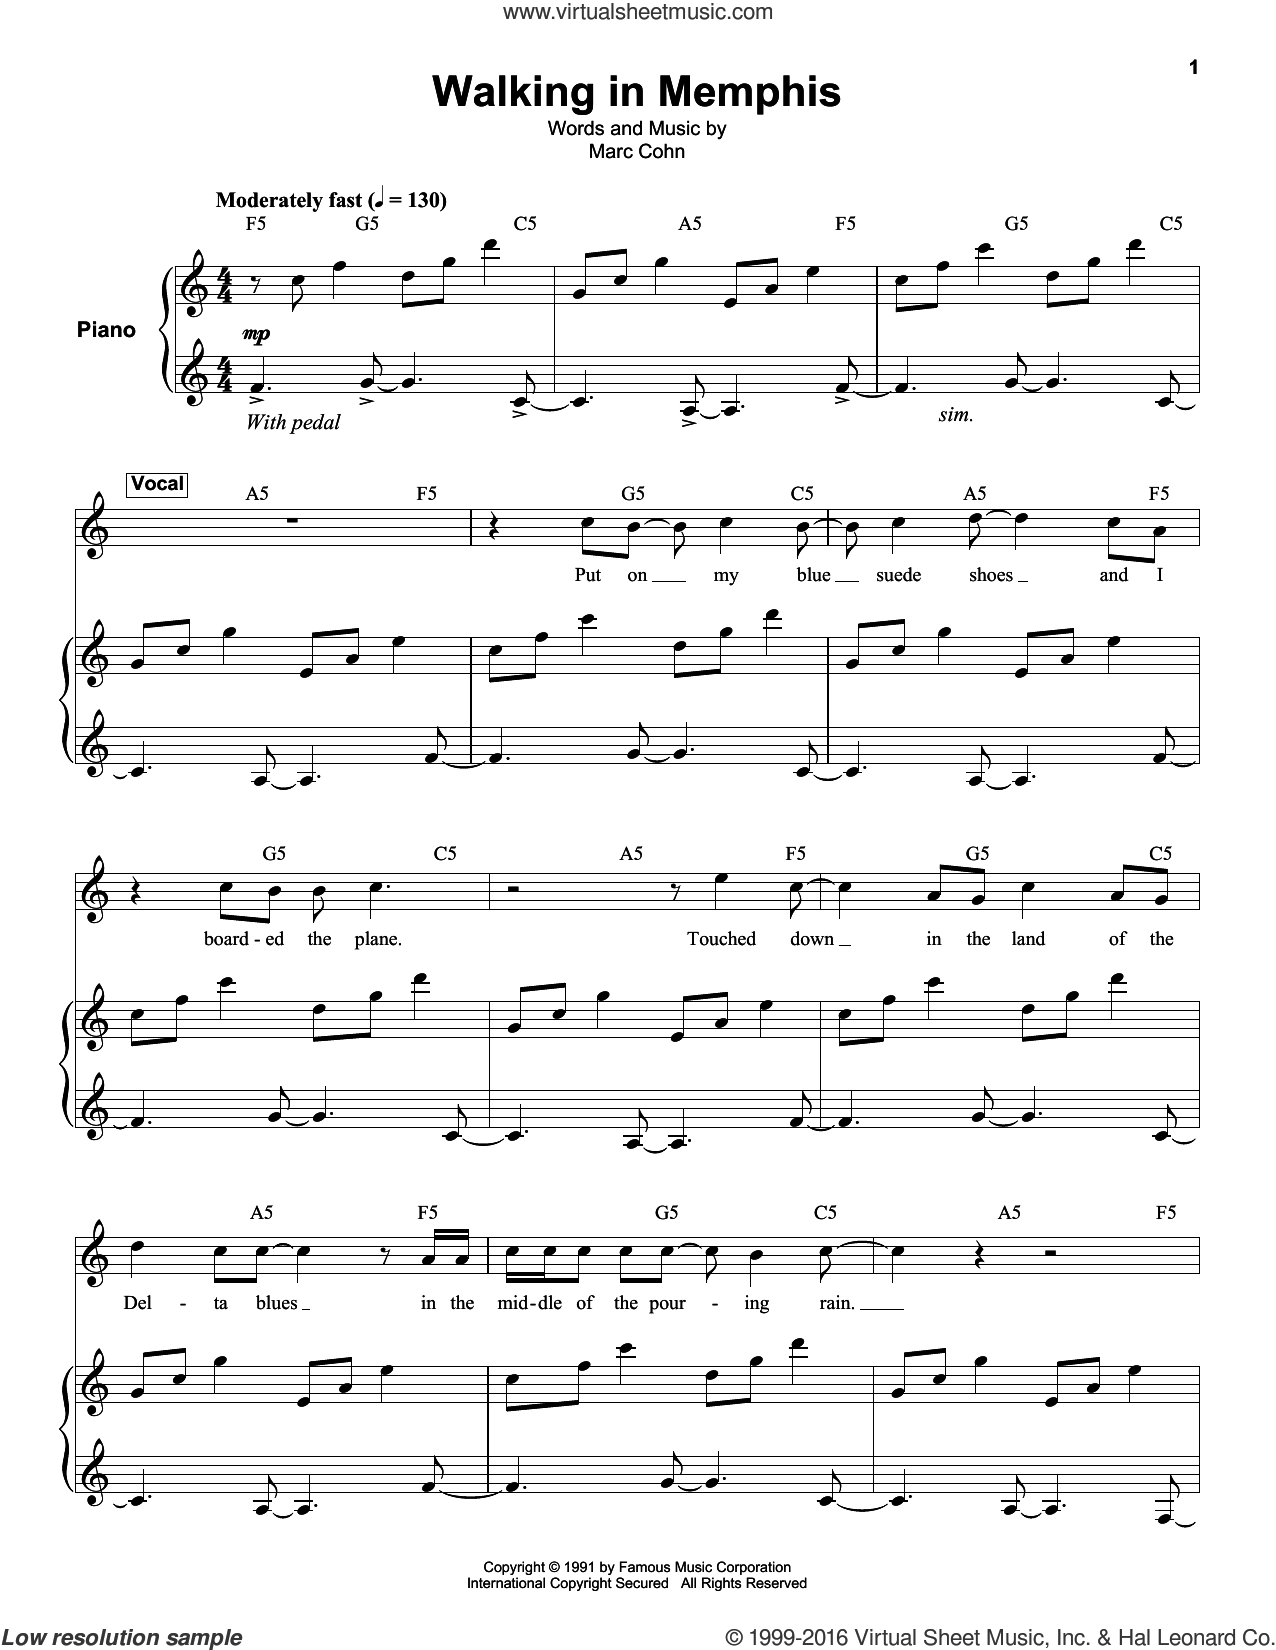 Walking In Memphis sheet music for keyboard or piano by Marc Cohn and Lonestar, intermediate skill level